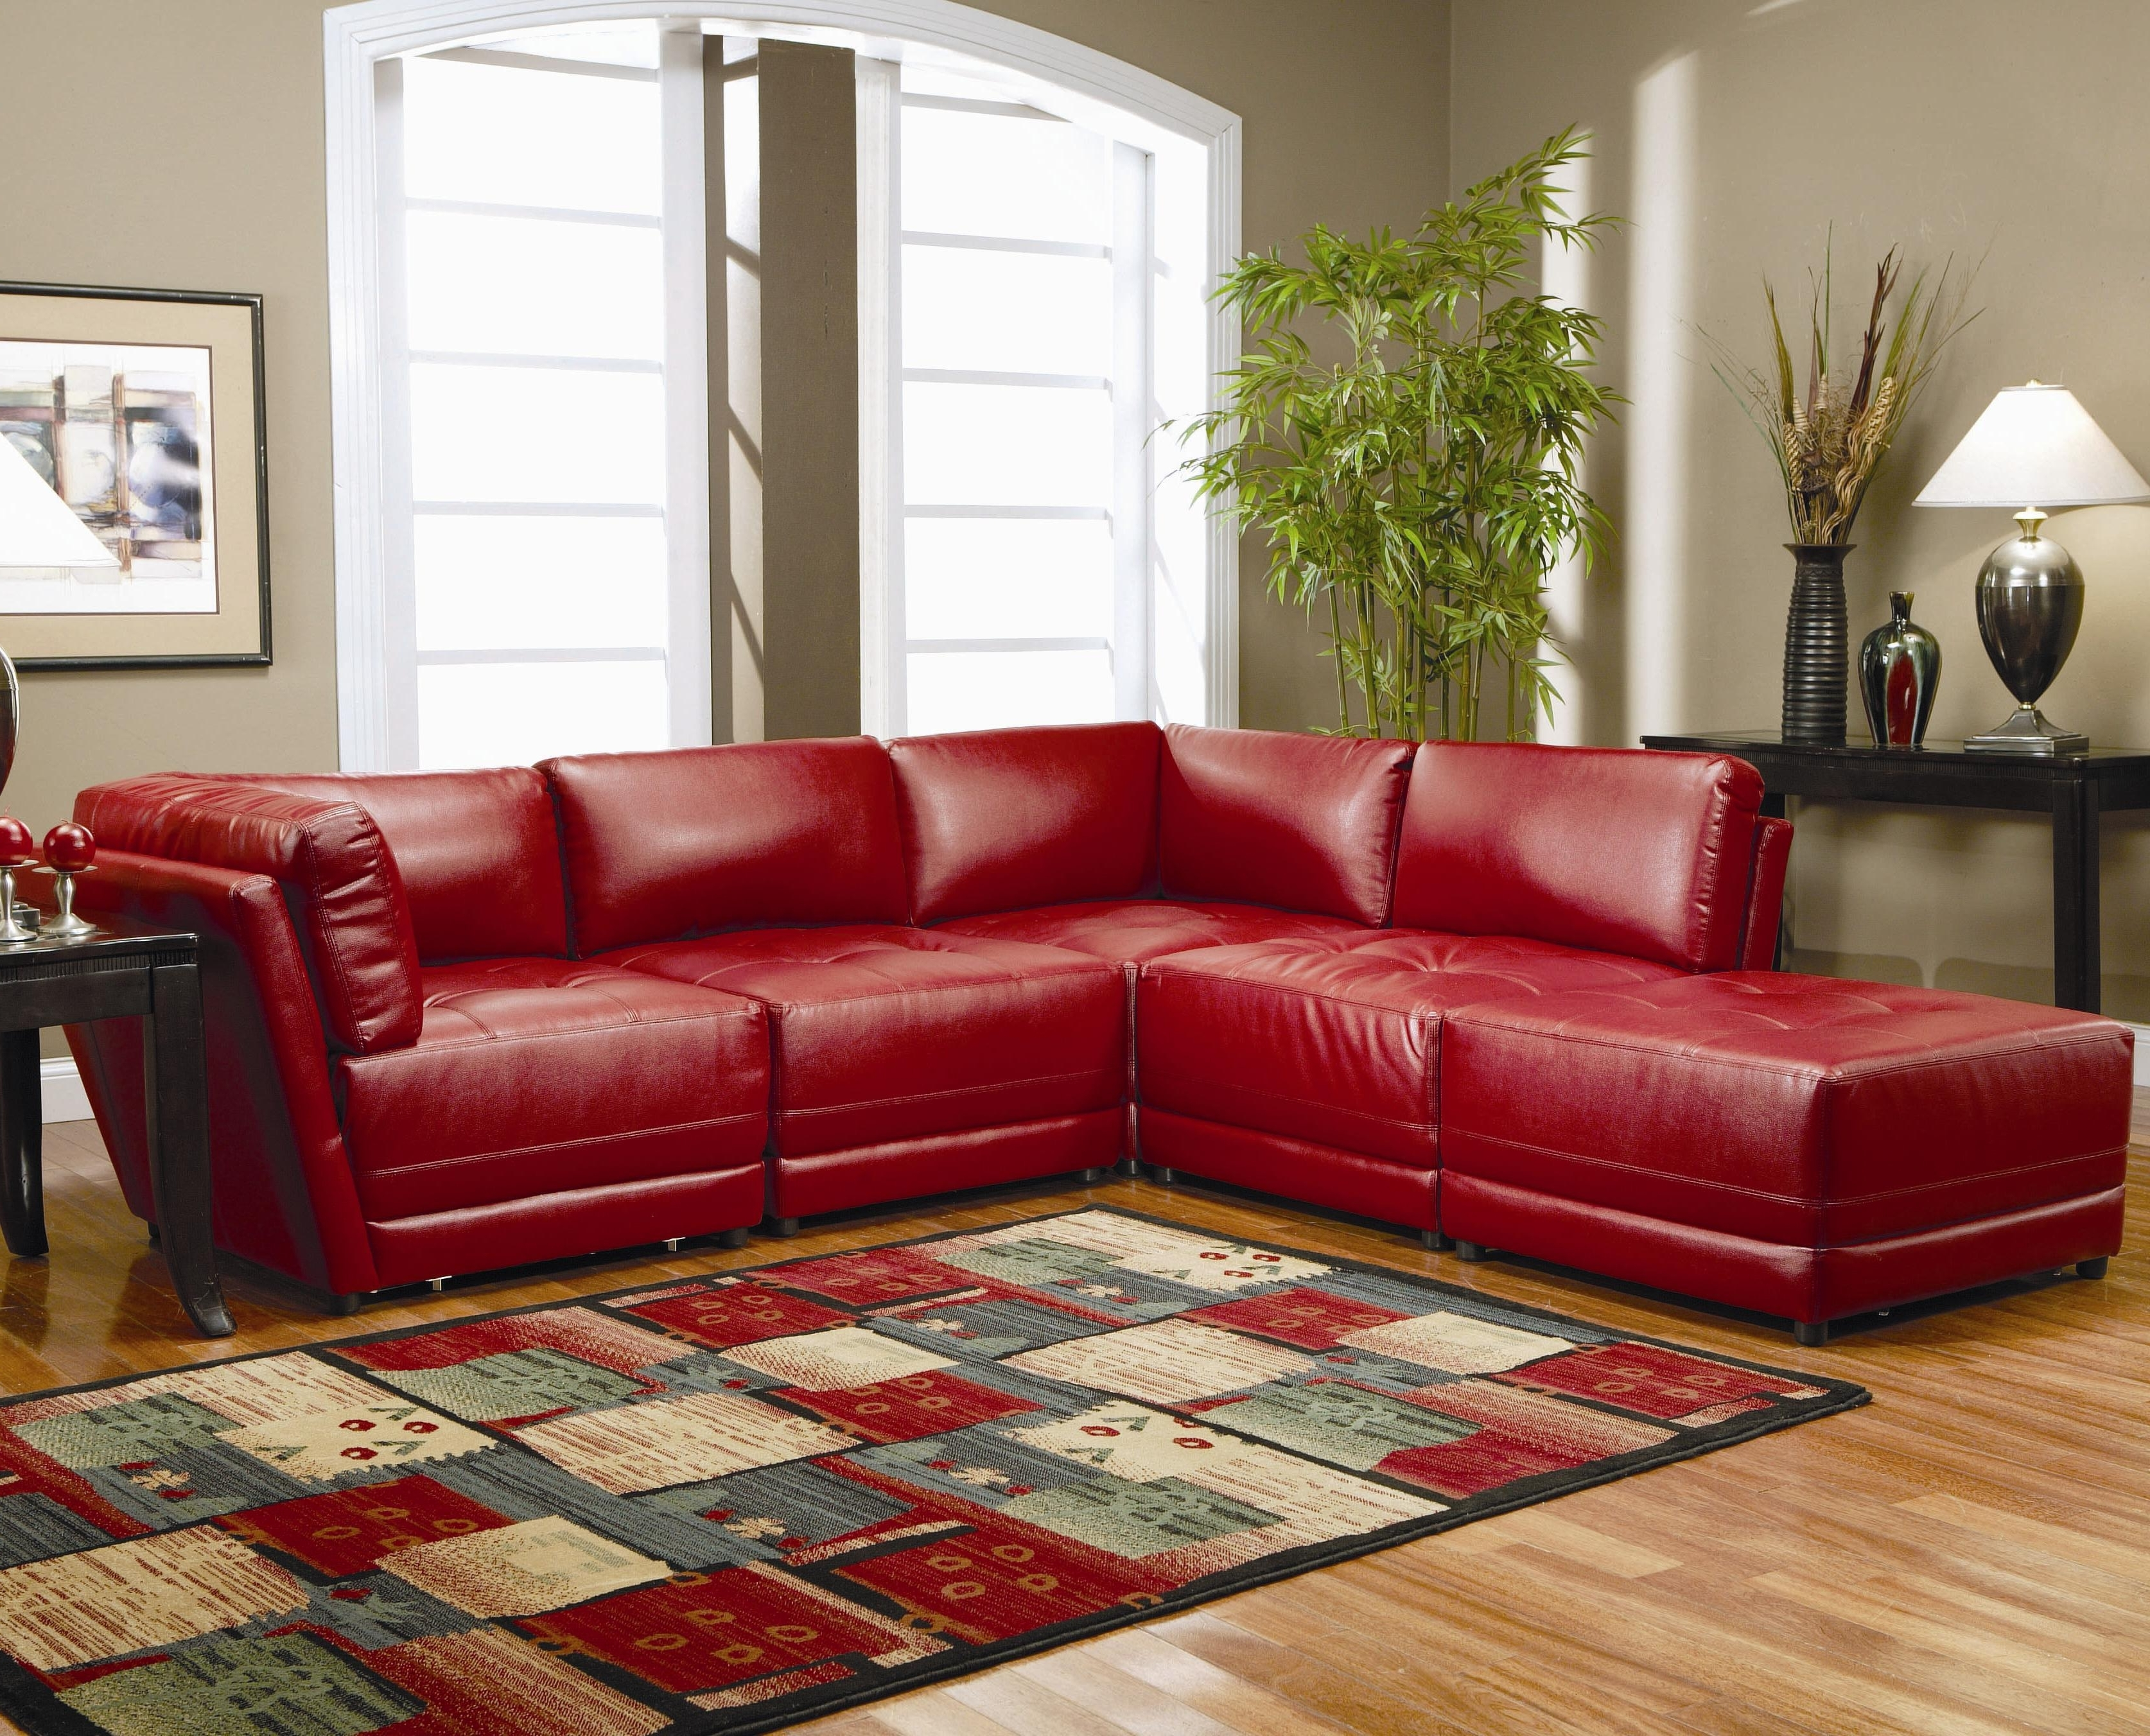 Favorite Warm Red Leather Sectional L Shaped Sofa Design Ideas For Living Regarding Red Leather Sectional Couches (View 15 of 15)